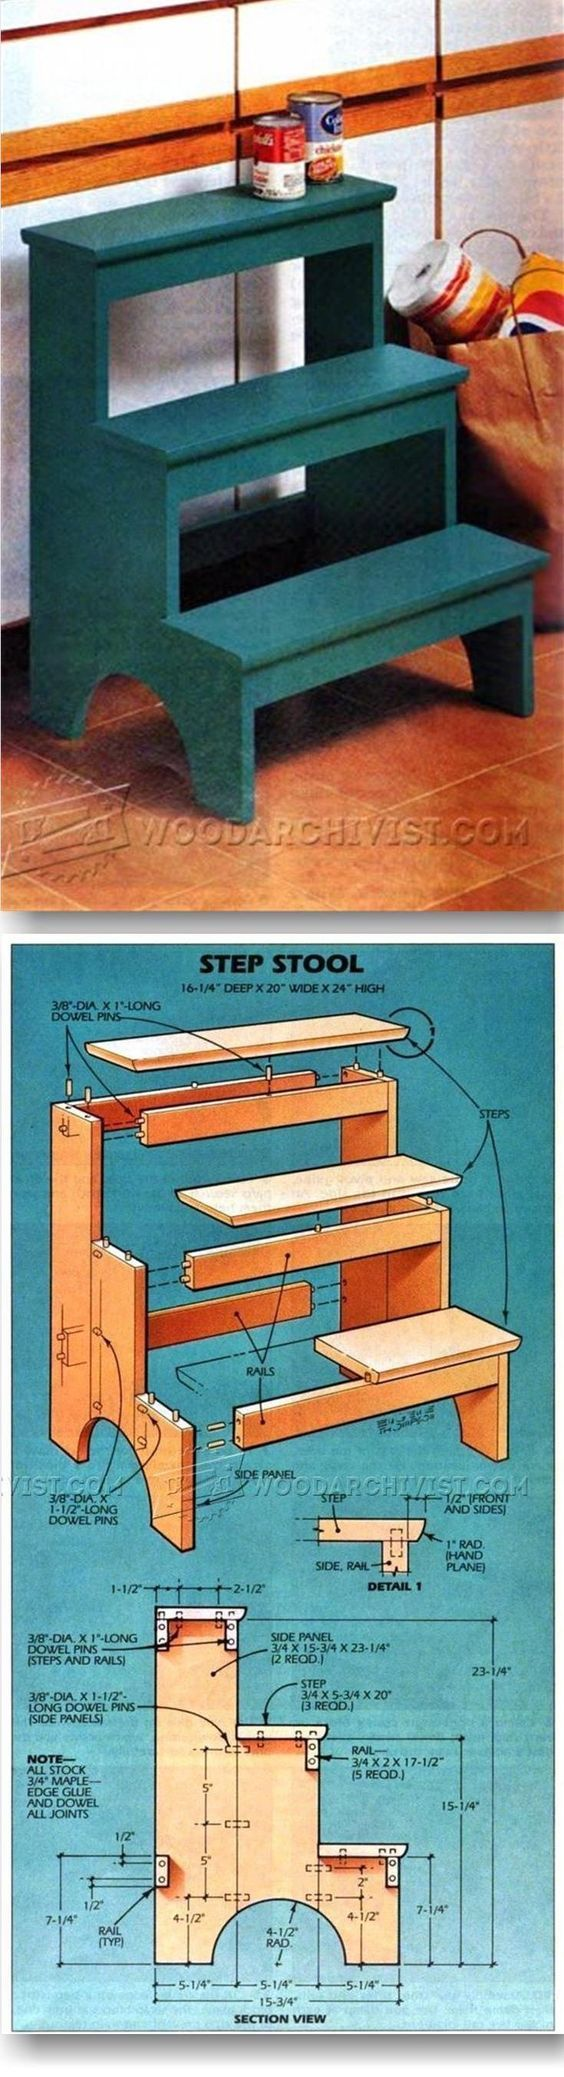 62 best step stools images on Pinterest | Woodworking, Step stools ...